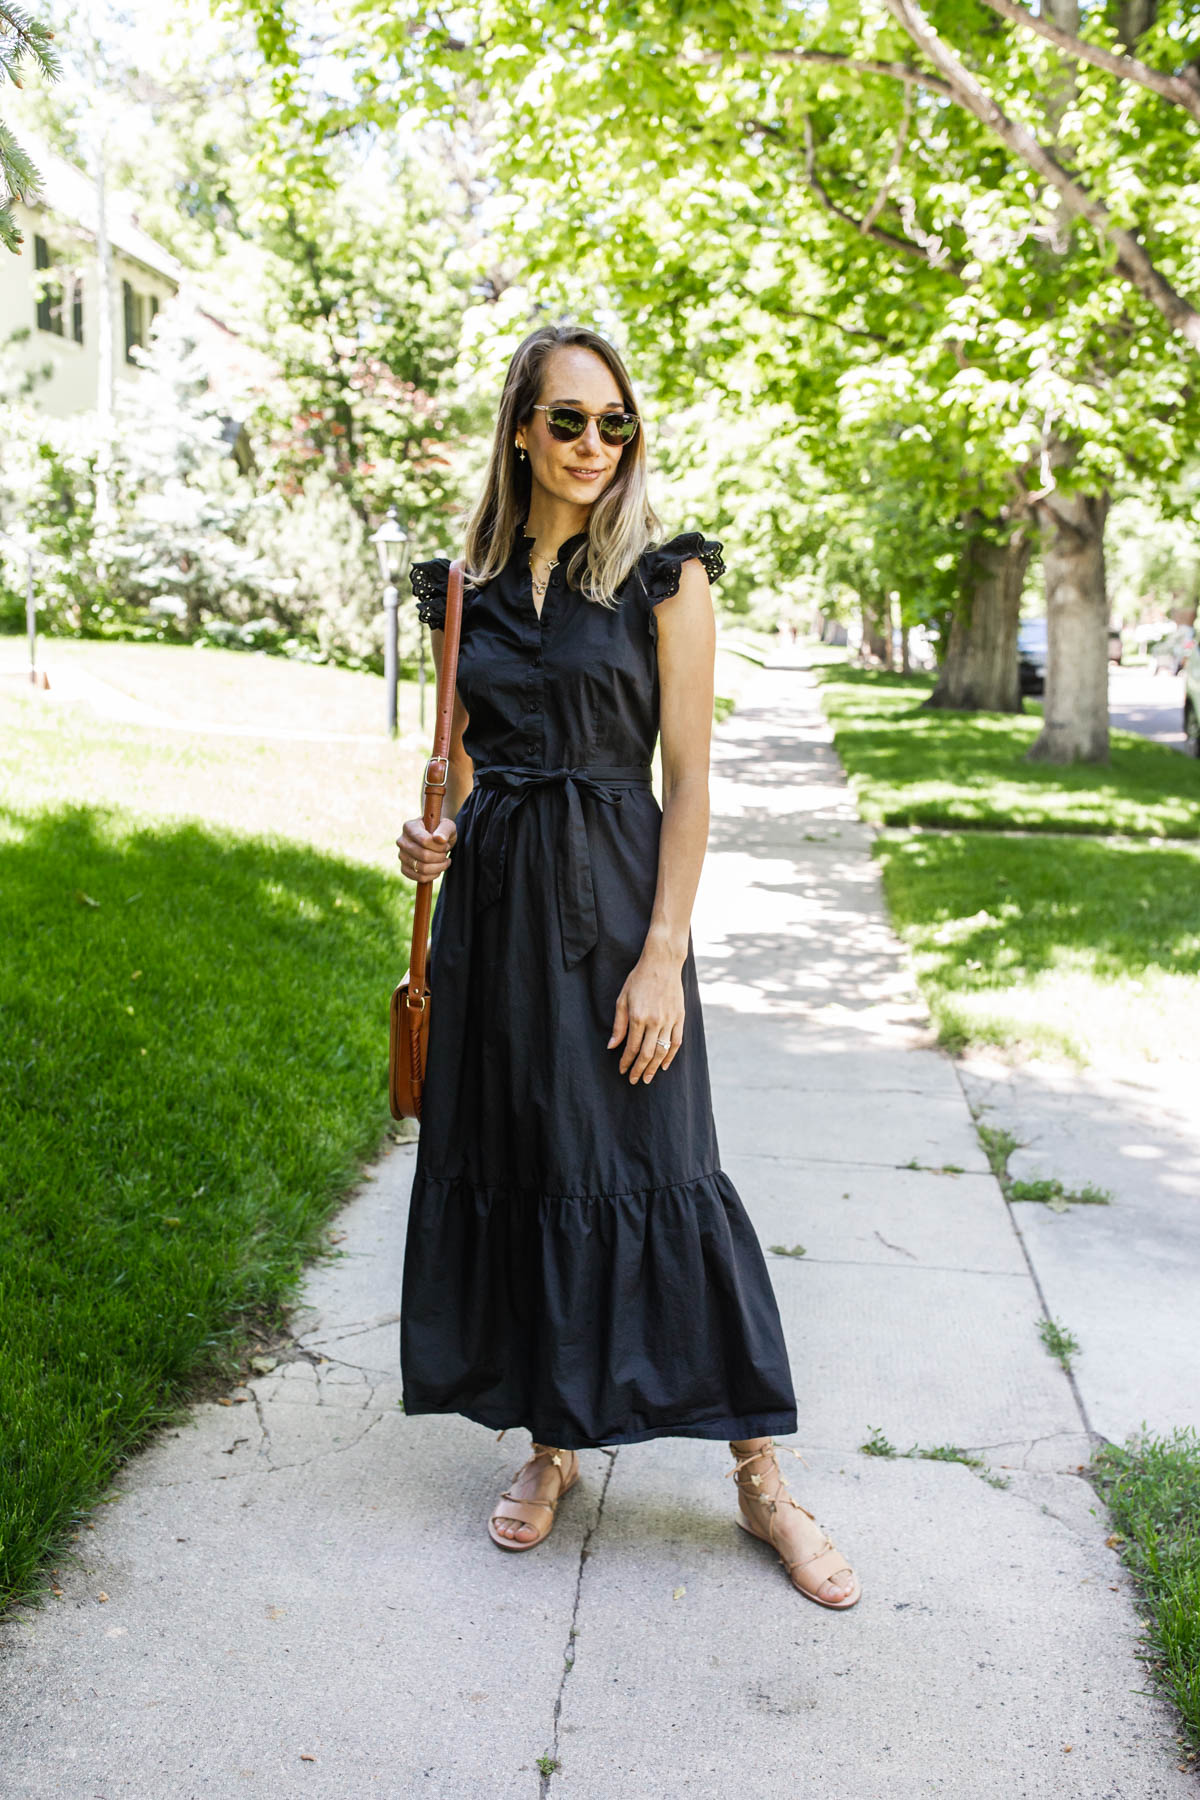 woman wearing black $40 Dresses for Summer